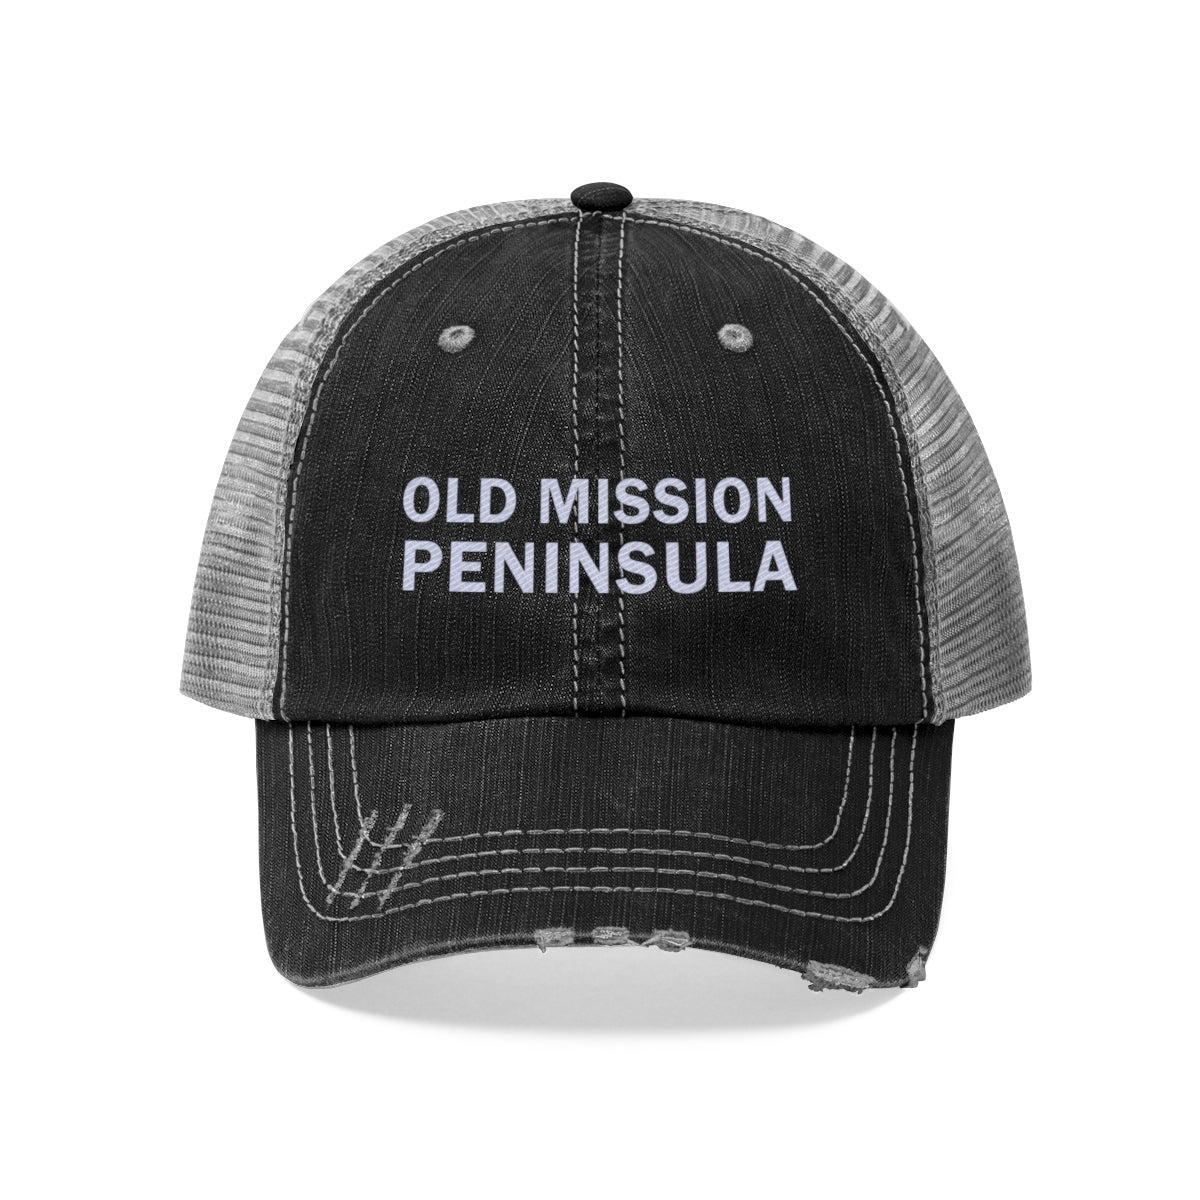 Old Mission Peninsula Unisex Trucker Hat